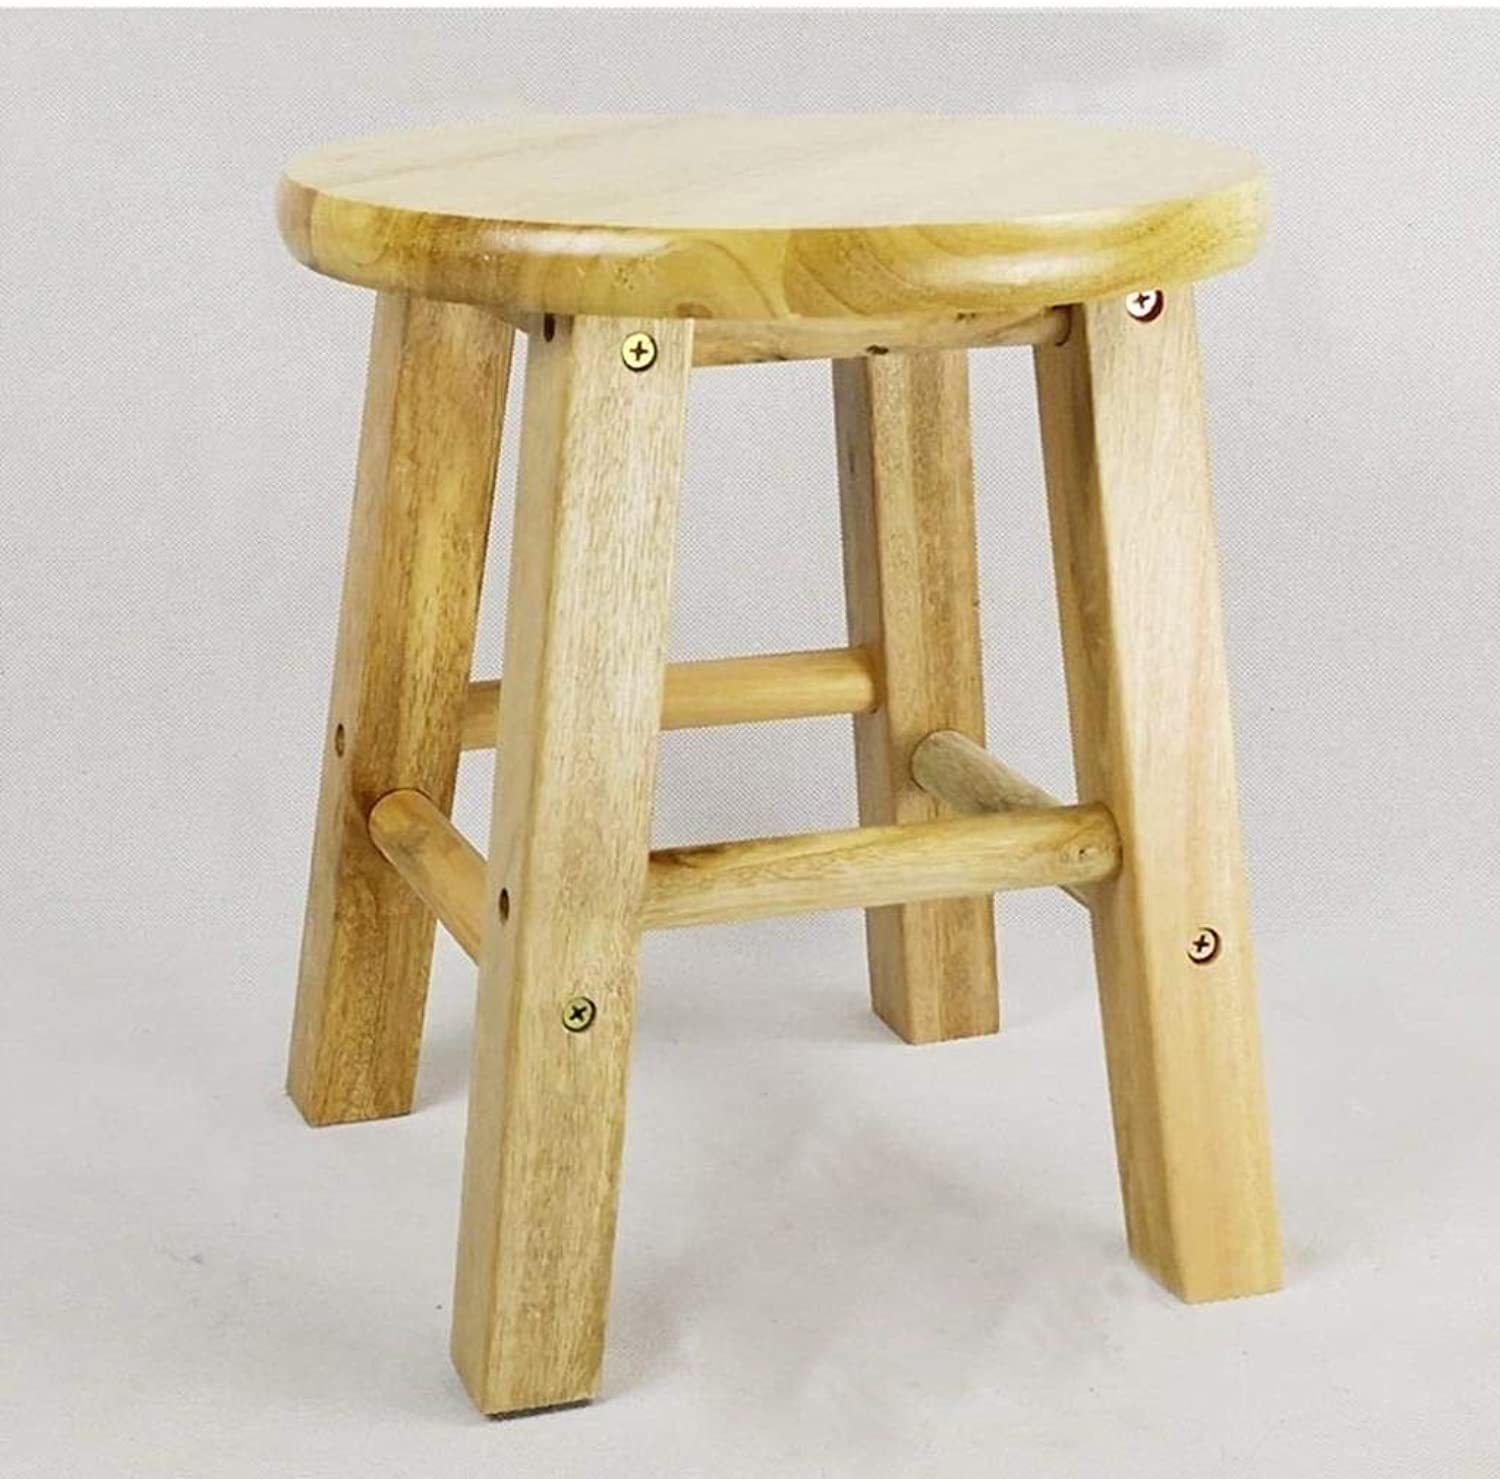 Solid Wood High Stool Small Stool High Stool Step Stool Bar Table Chair Small Wooden Bench High Bench Wooden Bench Wood Bench Home 25×2×25cm, 25×2×30cm ZXMDMZ (color   C)